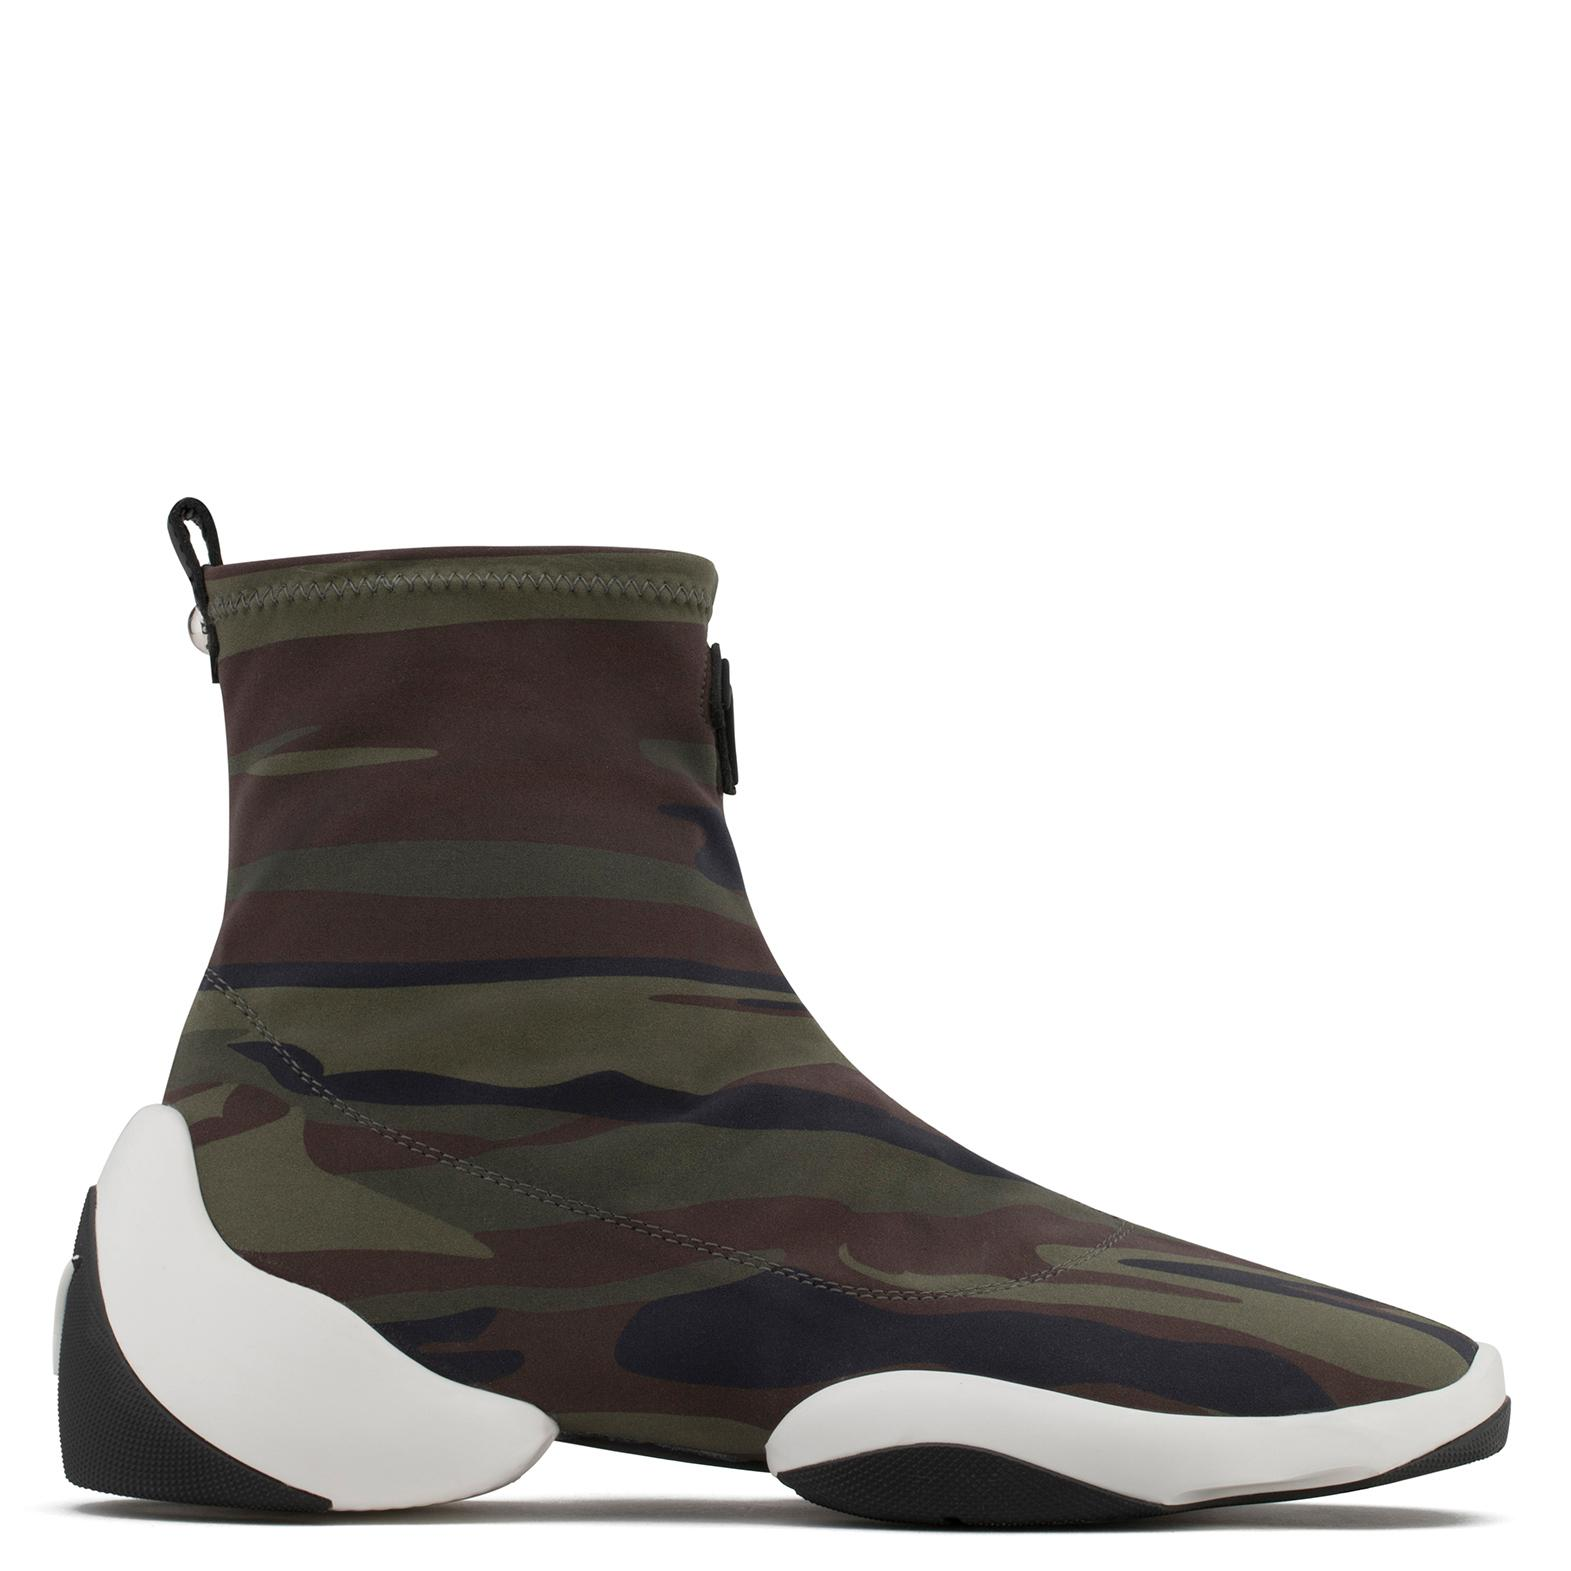 Giuseppe Zanotti Neoprene high-top sneaker LIGHT JUMP HT1 ELcwjzdm